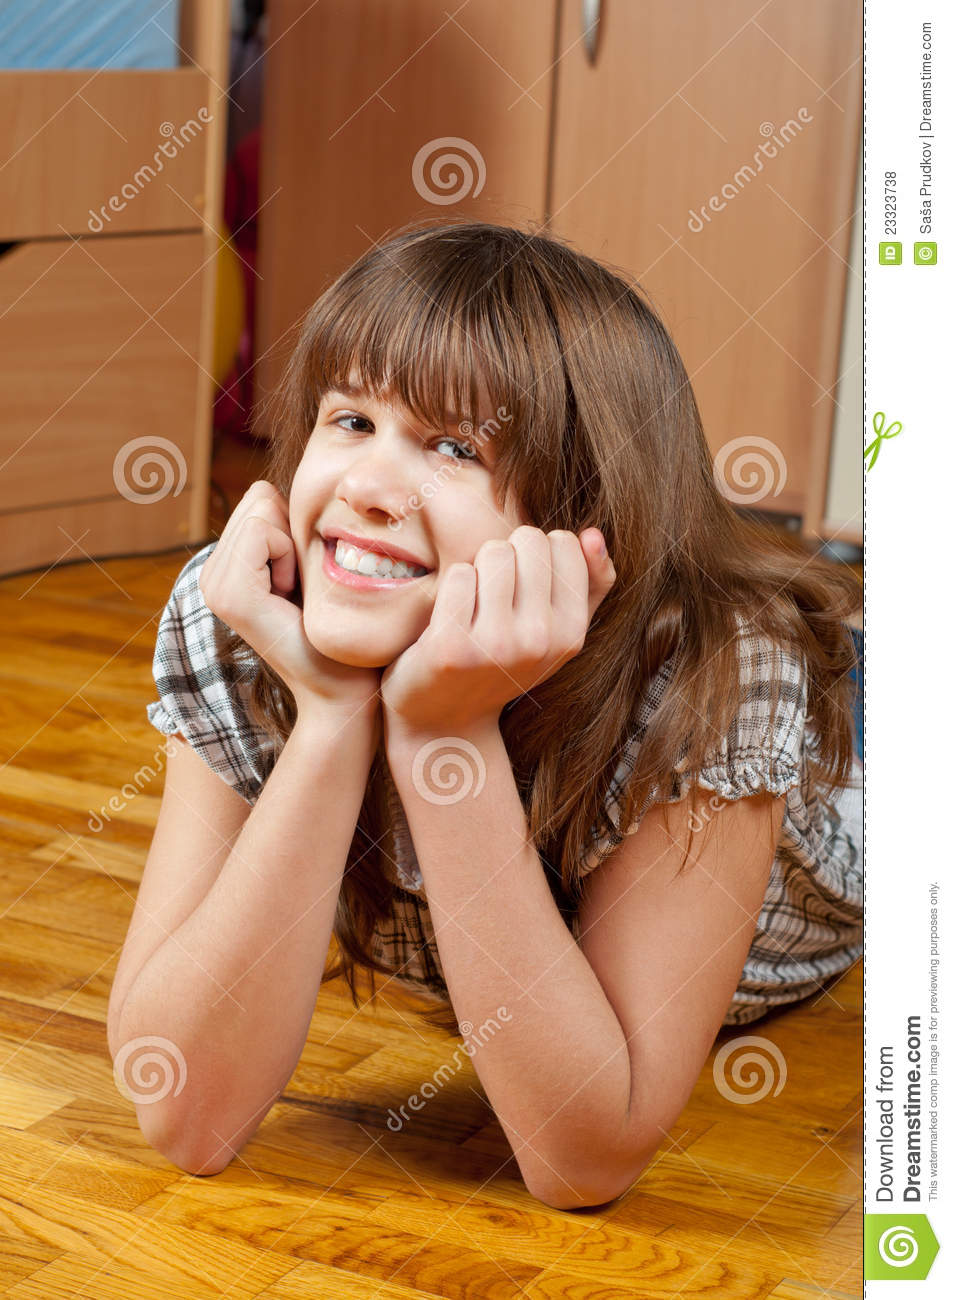 Cute teenage girl lying on the floor royalty free stock for Cute teenager girls